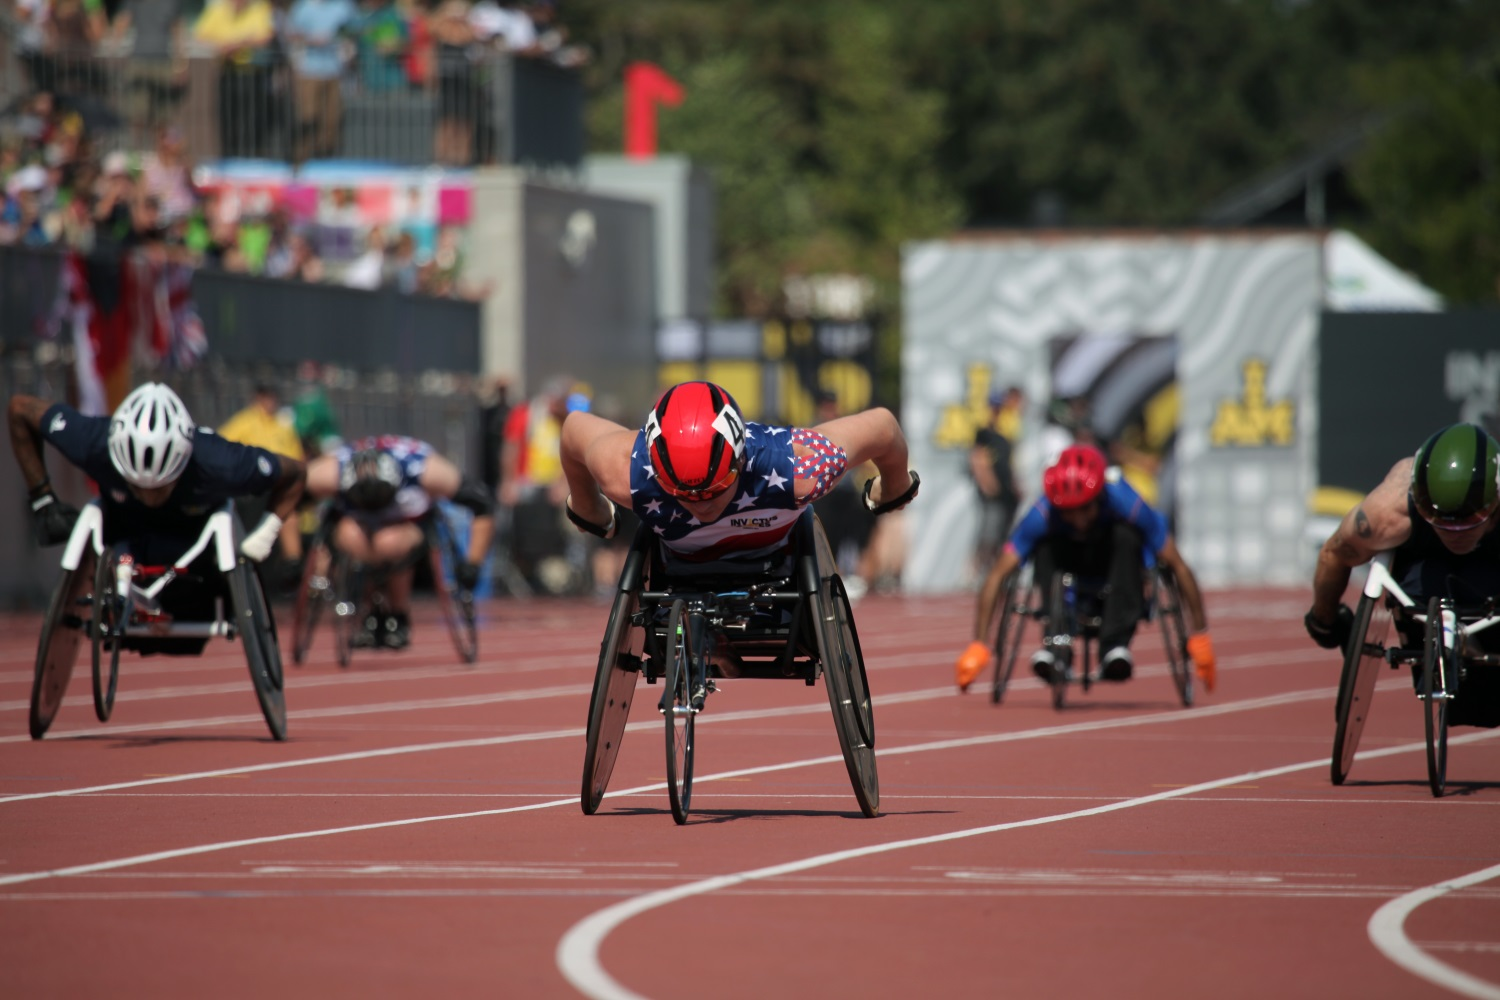 U.S. Marine Sgt. Ivan Sears competes in the Invictus Games' 100-meter wheelchair dash at York Lions Stadium in Toronto, Canada, on Sept. 24, 2017. The Invictus Games is taking place Sept. 23-30. (Staff Sgt. Daniel Luksan/Army)